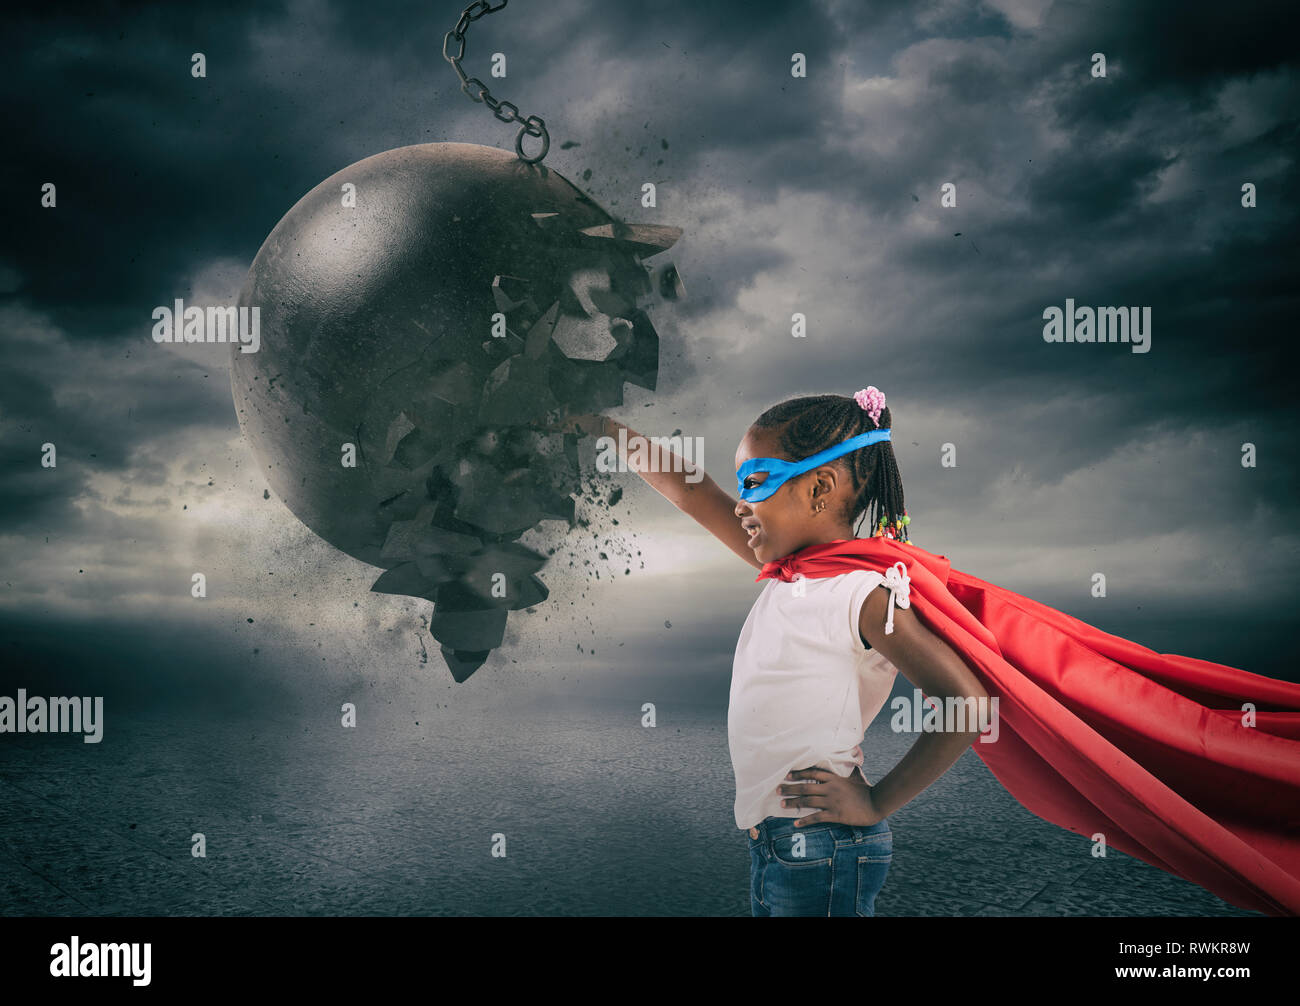 Power and determination of a super hero child against a wrecking ball - Stock Image